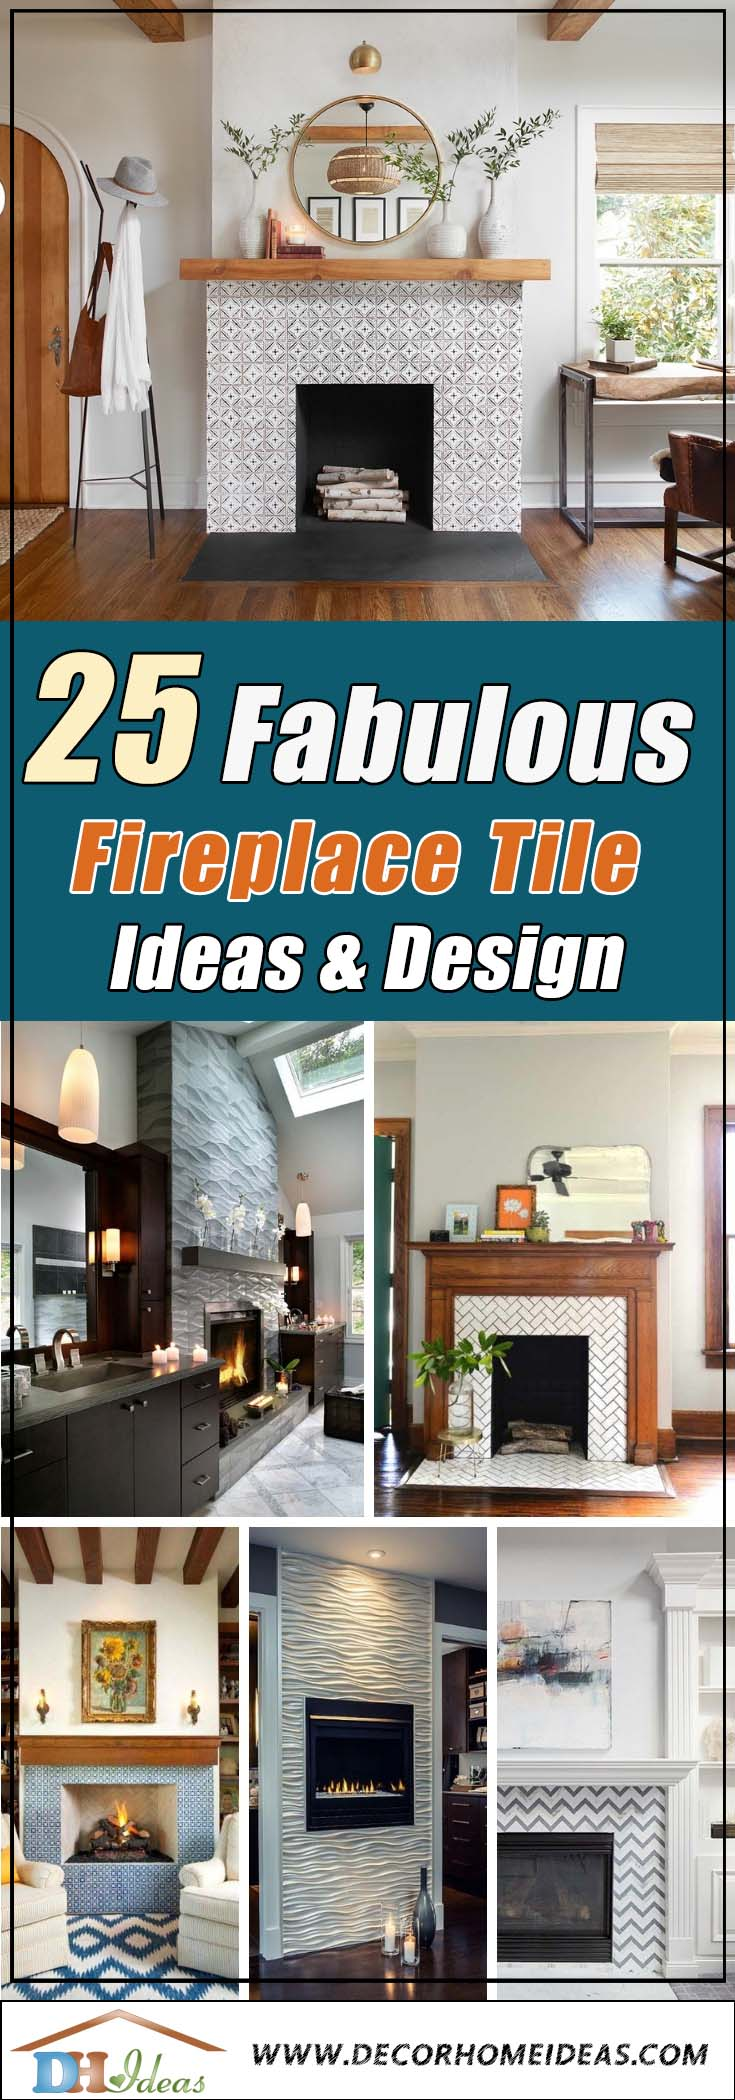 Amazing Fireplace Tile Ideas #fireplace #fireplacedesign #tile #fireplacetile #decorhomeideas